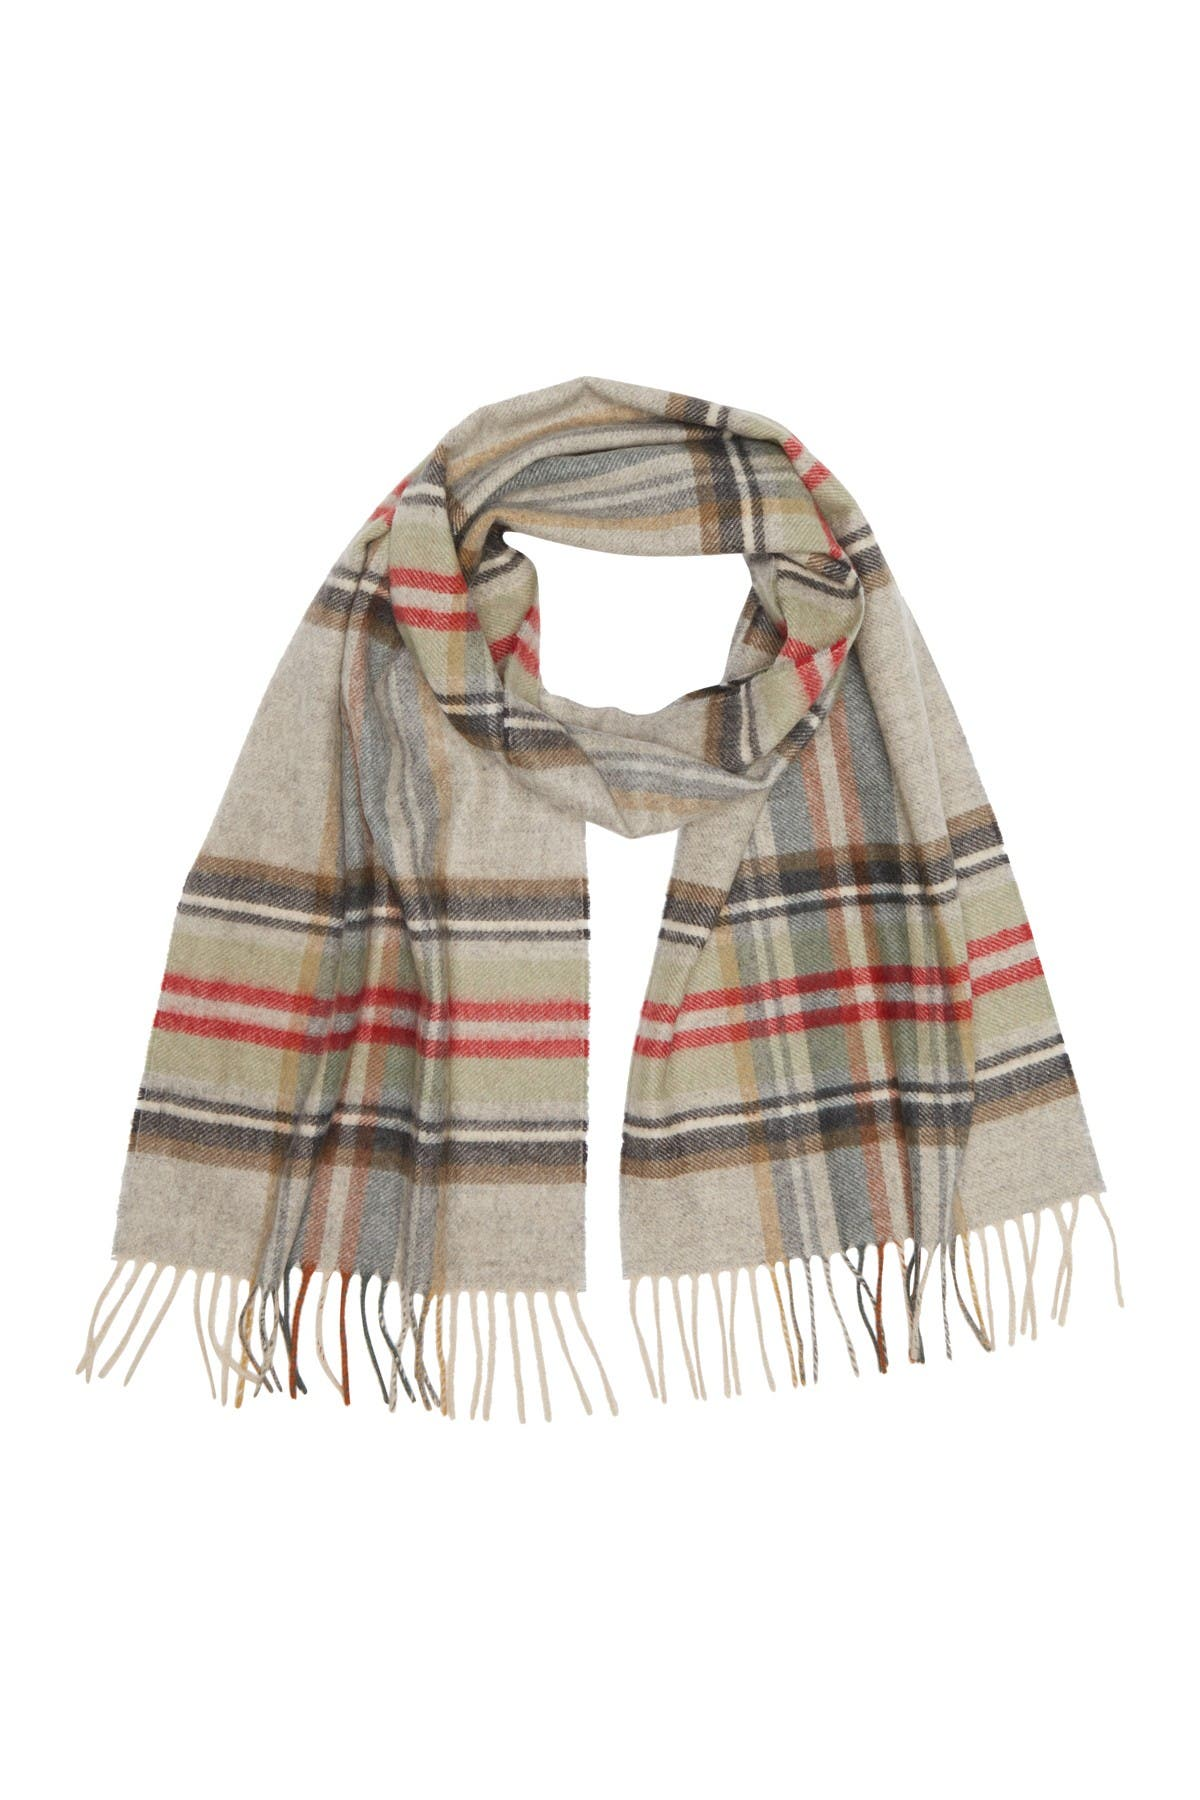 Image of Chelsey Imports Plaid Cashmere Scarf